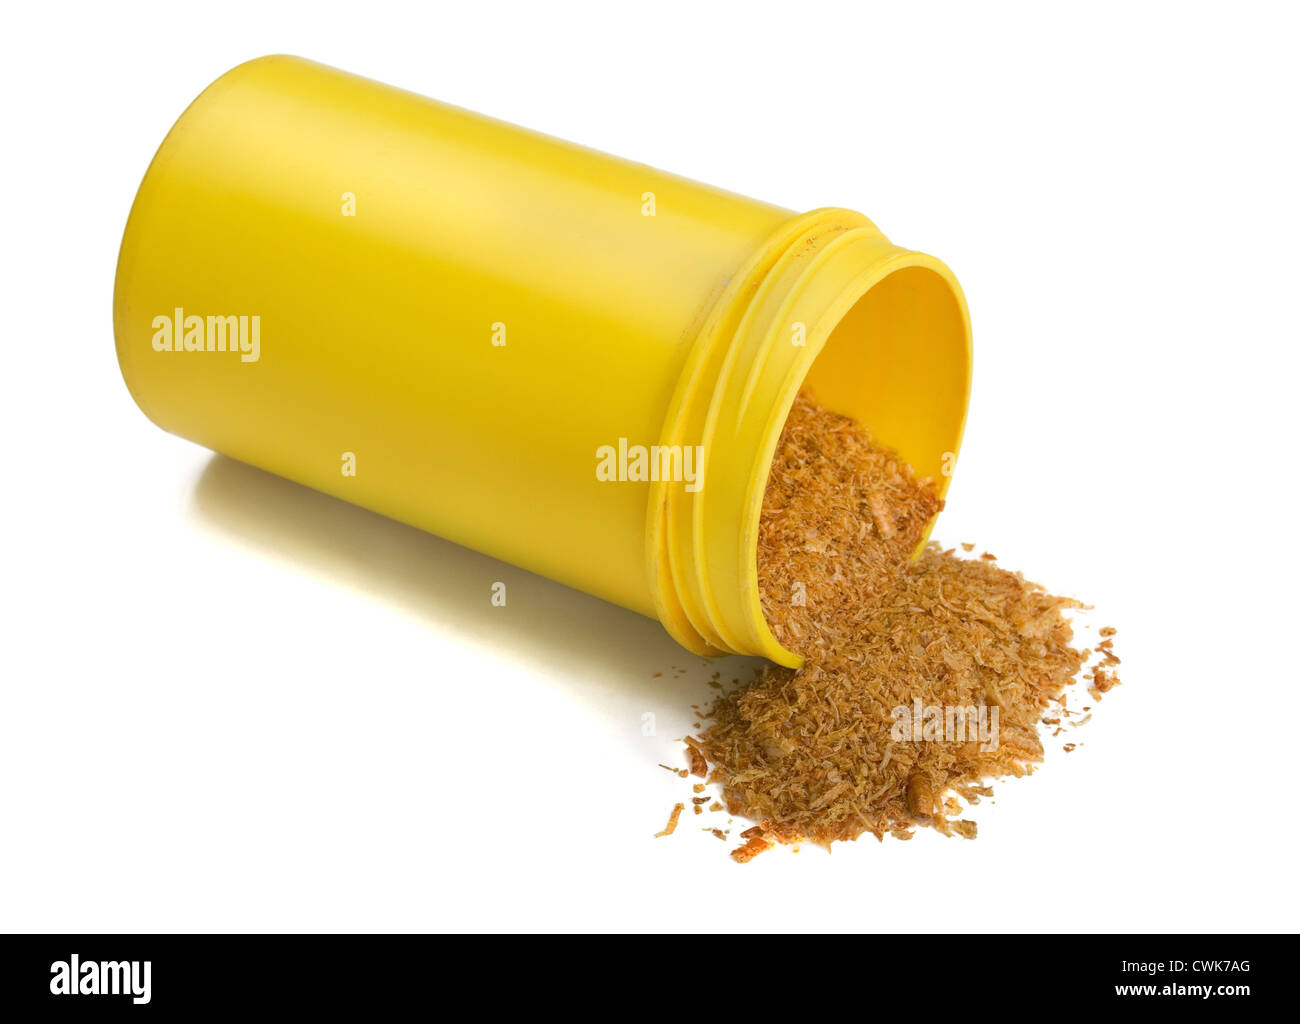 Dried aquarium fish feed in yellow plastic container isolated on white - Stock Image